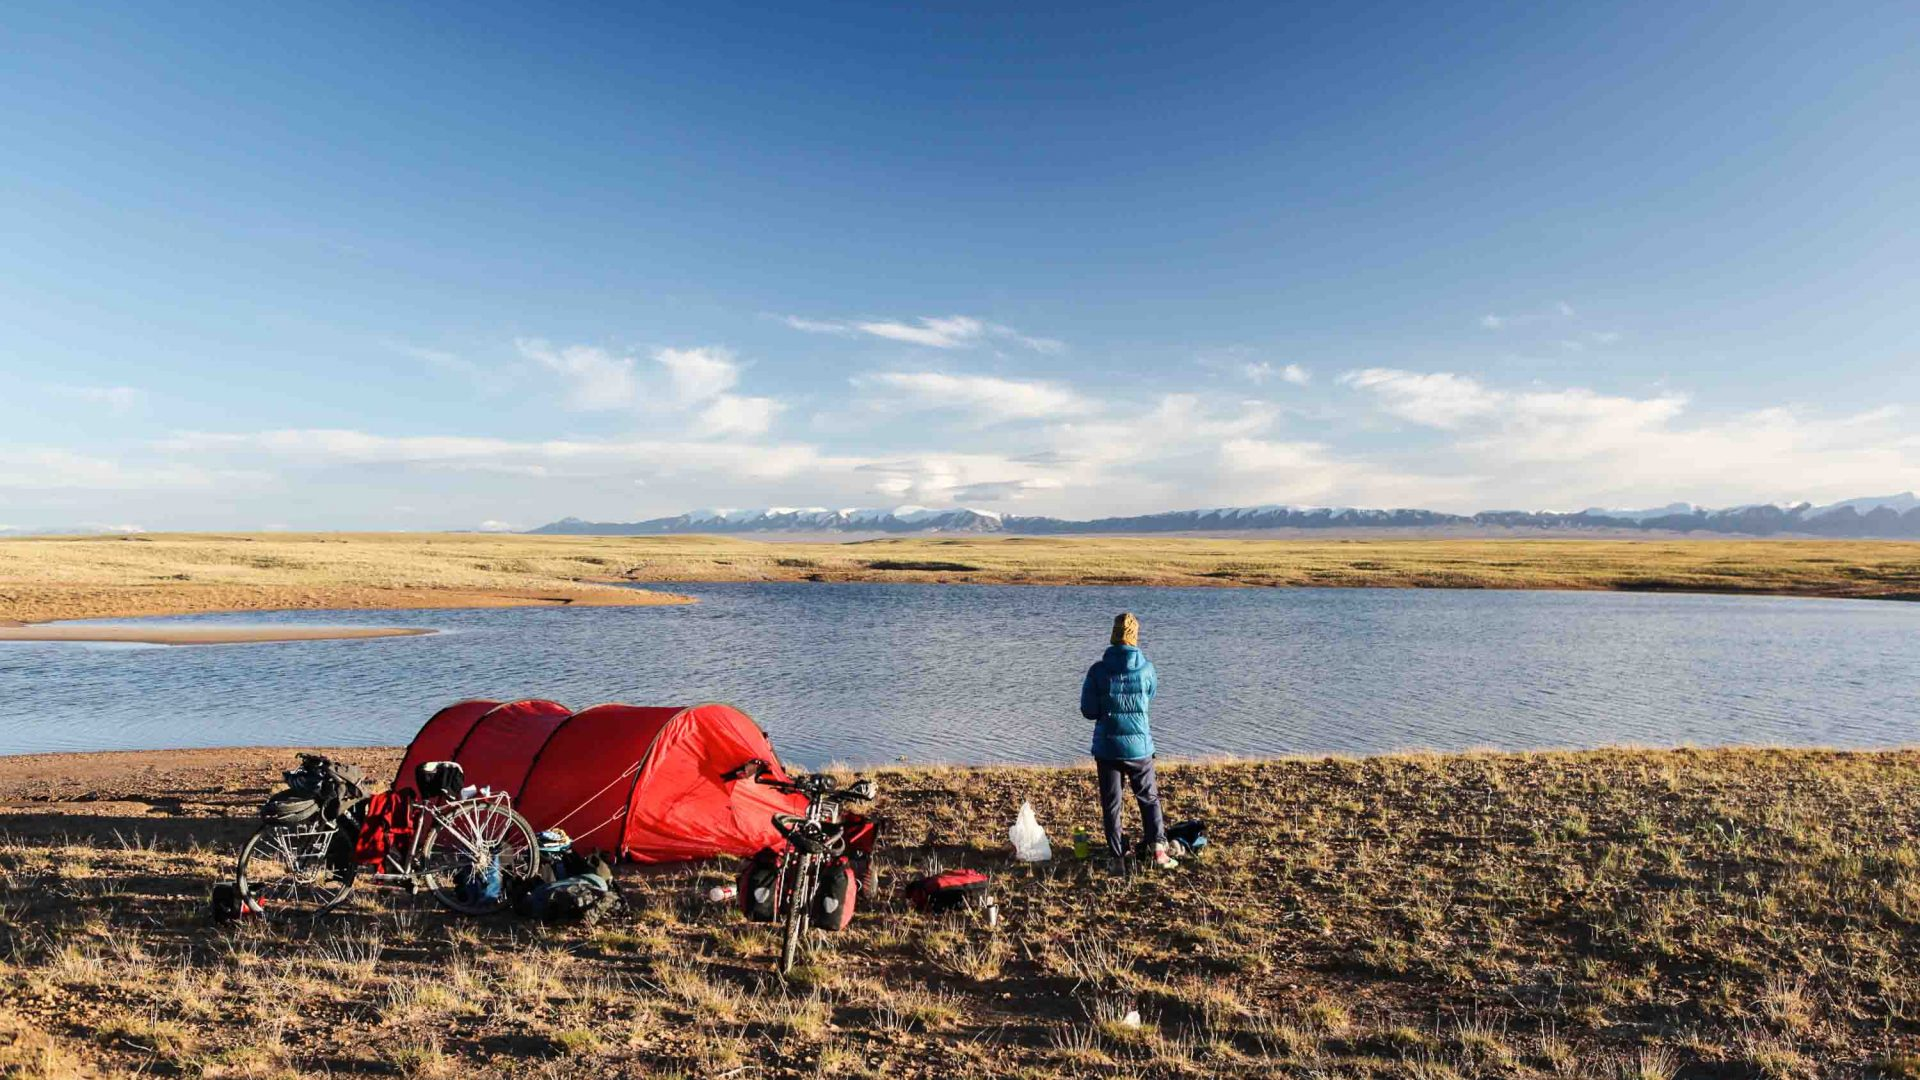 Camping with bikes on the Tibetan Plateau, China.